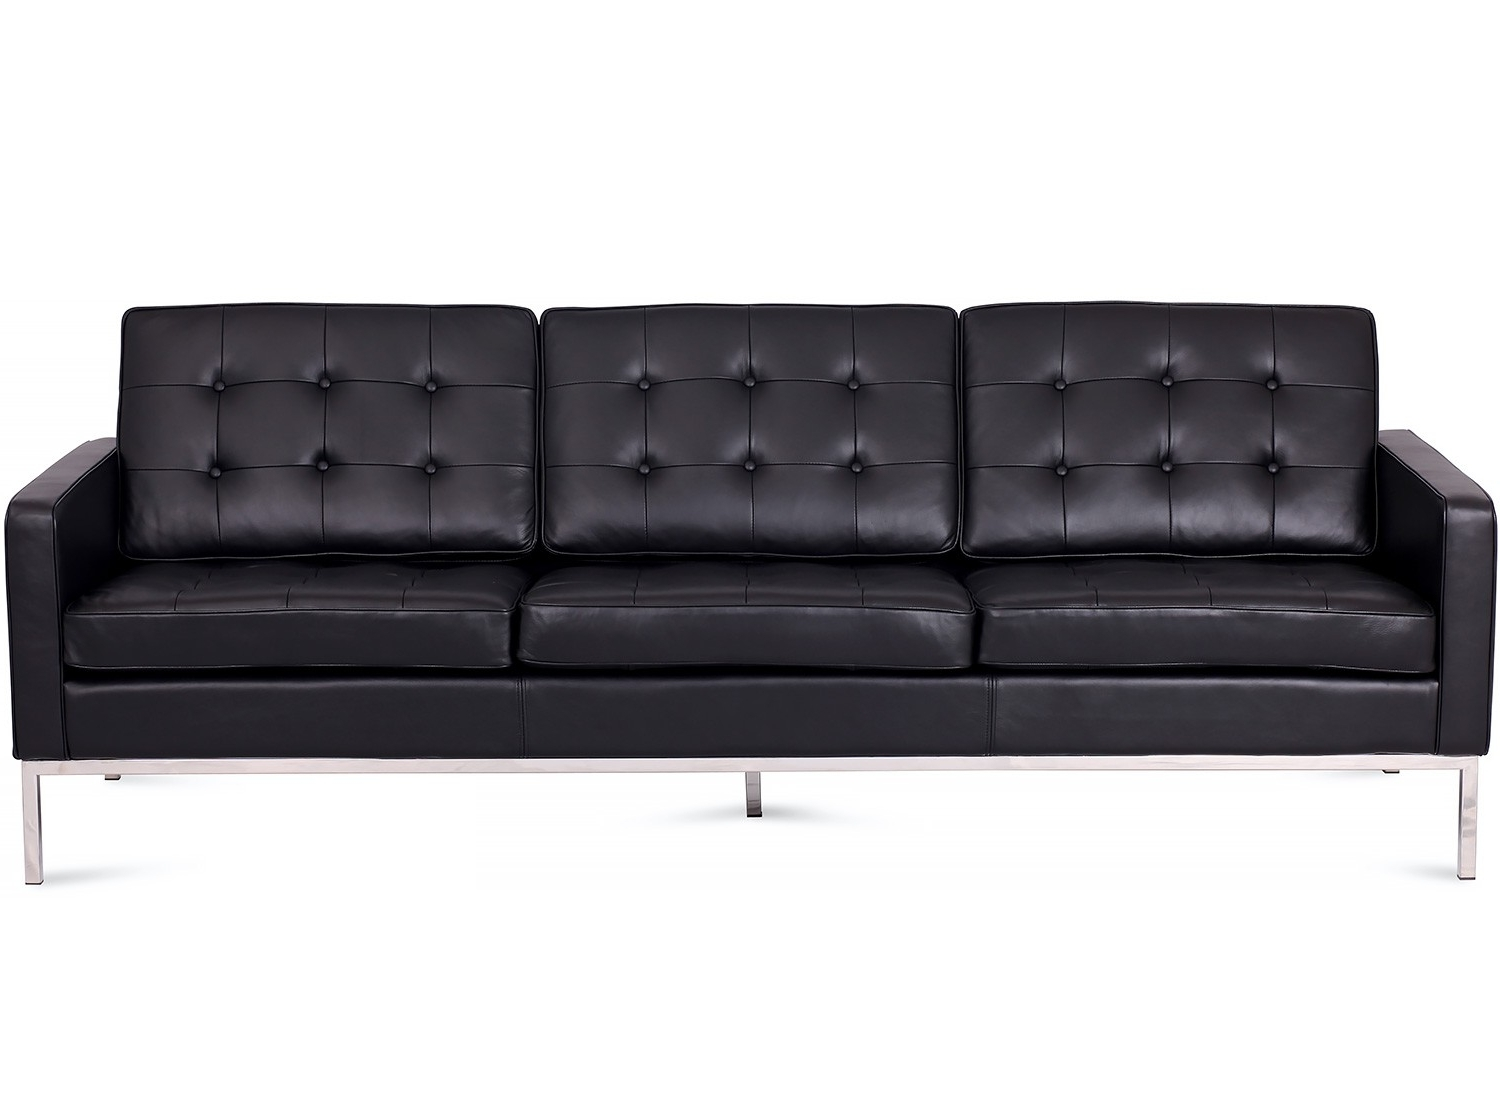 Latest Florence Knoll Leather Sofas intended for Florence Knoll Sofa 3 Seater Leather (Platinum Replica)